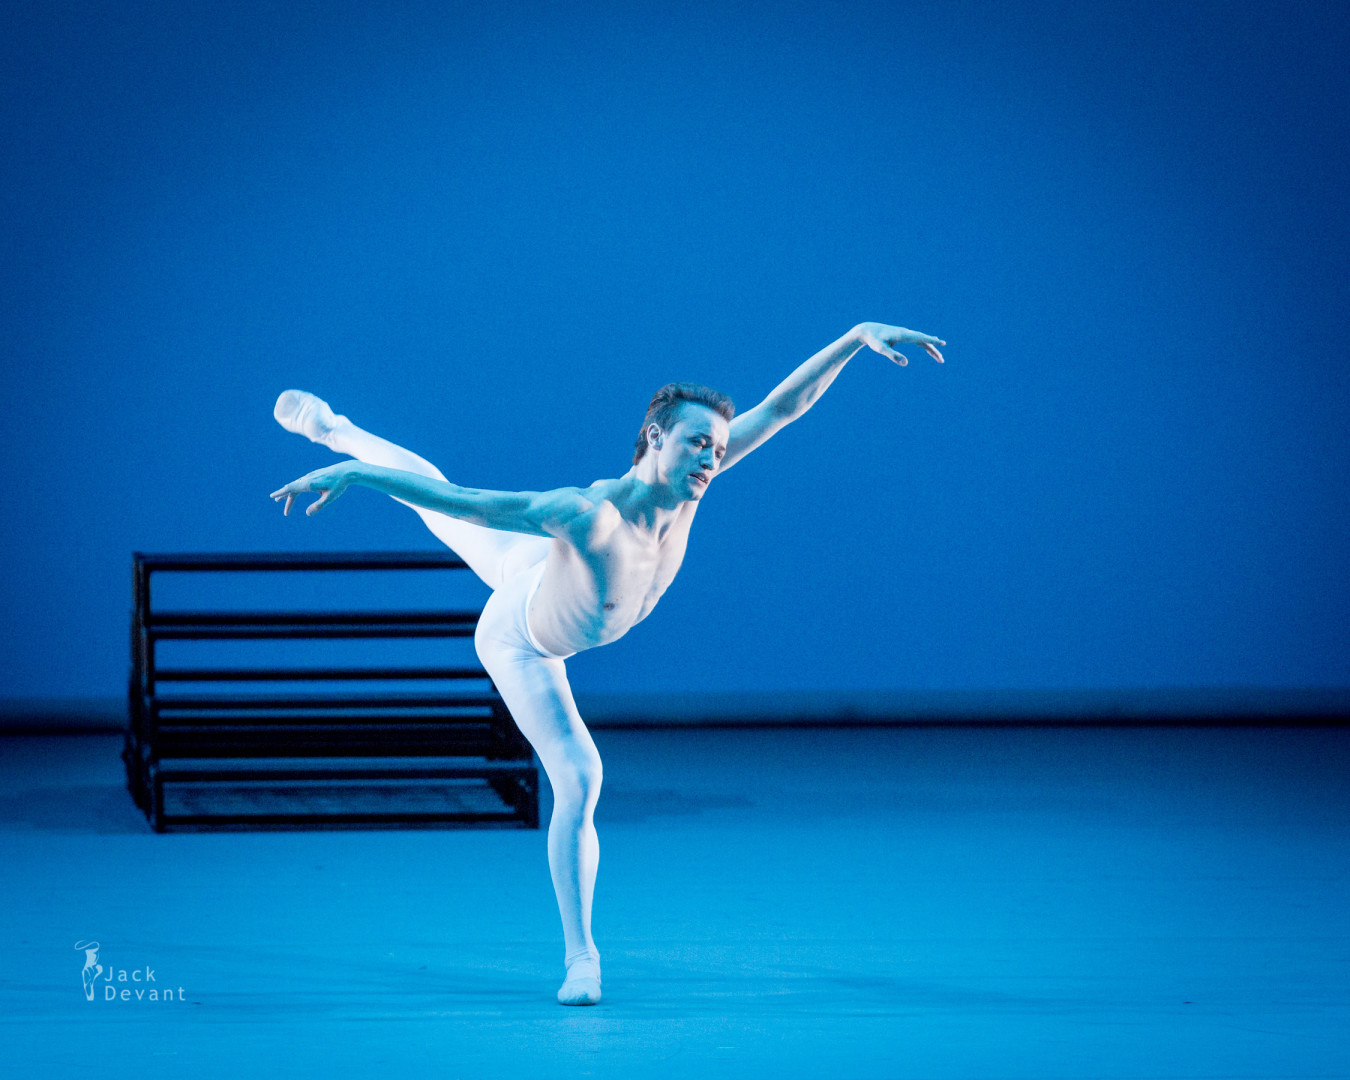 Denis matvienko in Dance of Blessed Spirits